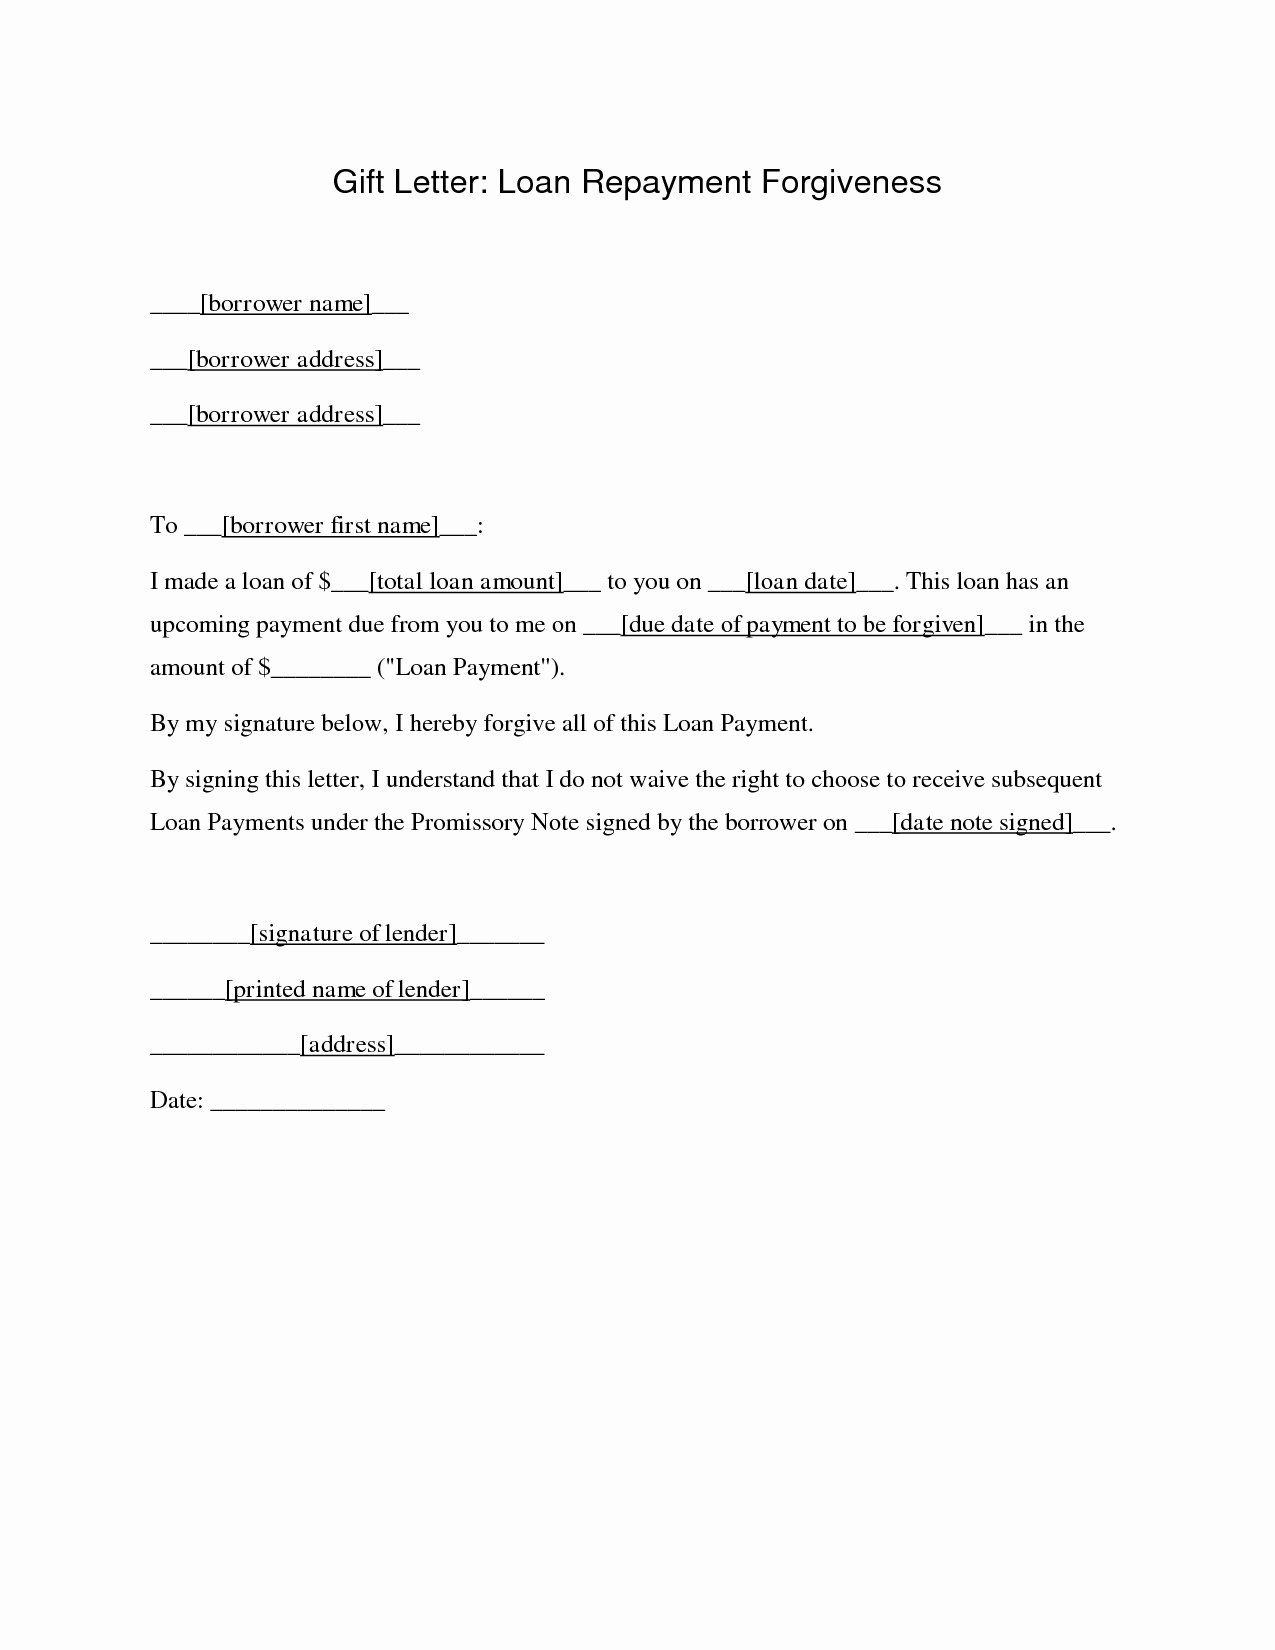 Personal Loan Letter Format Elegant Personal Loan Repayment Letter Template Examples In 2020 Letter Templates Personal Loans Donation Letter Template